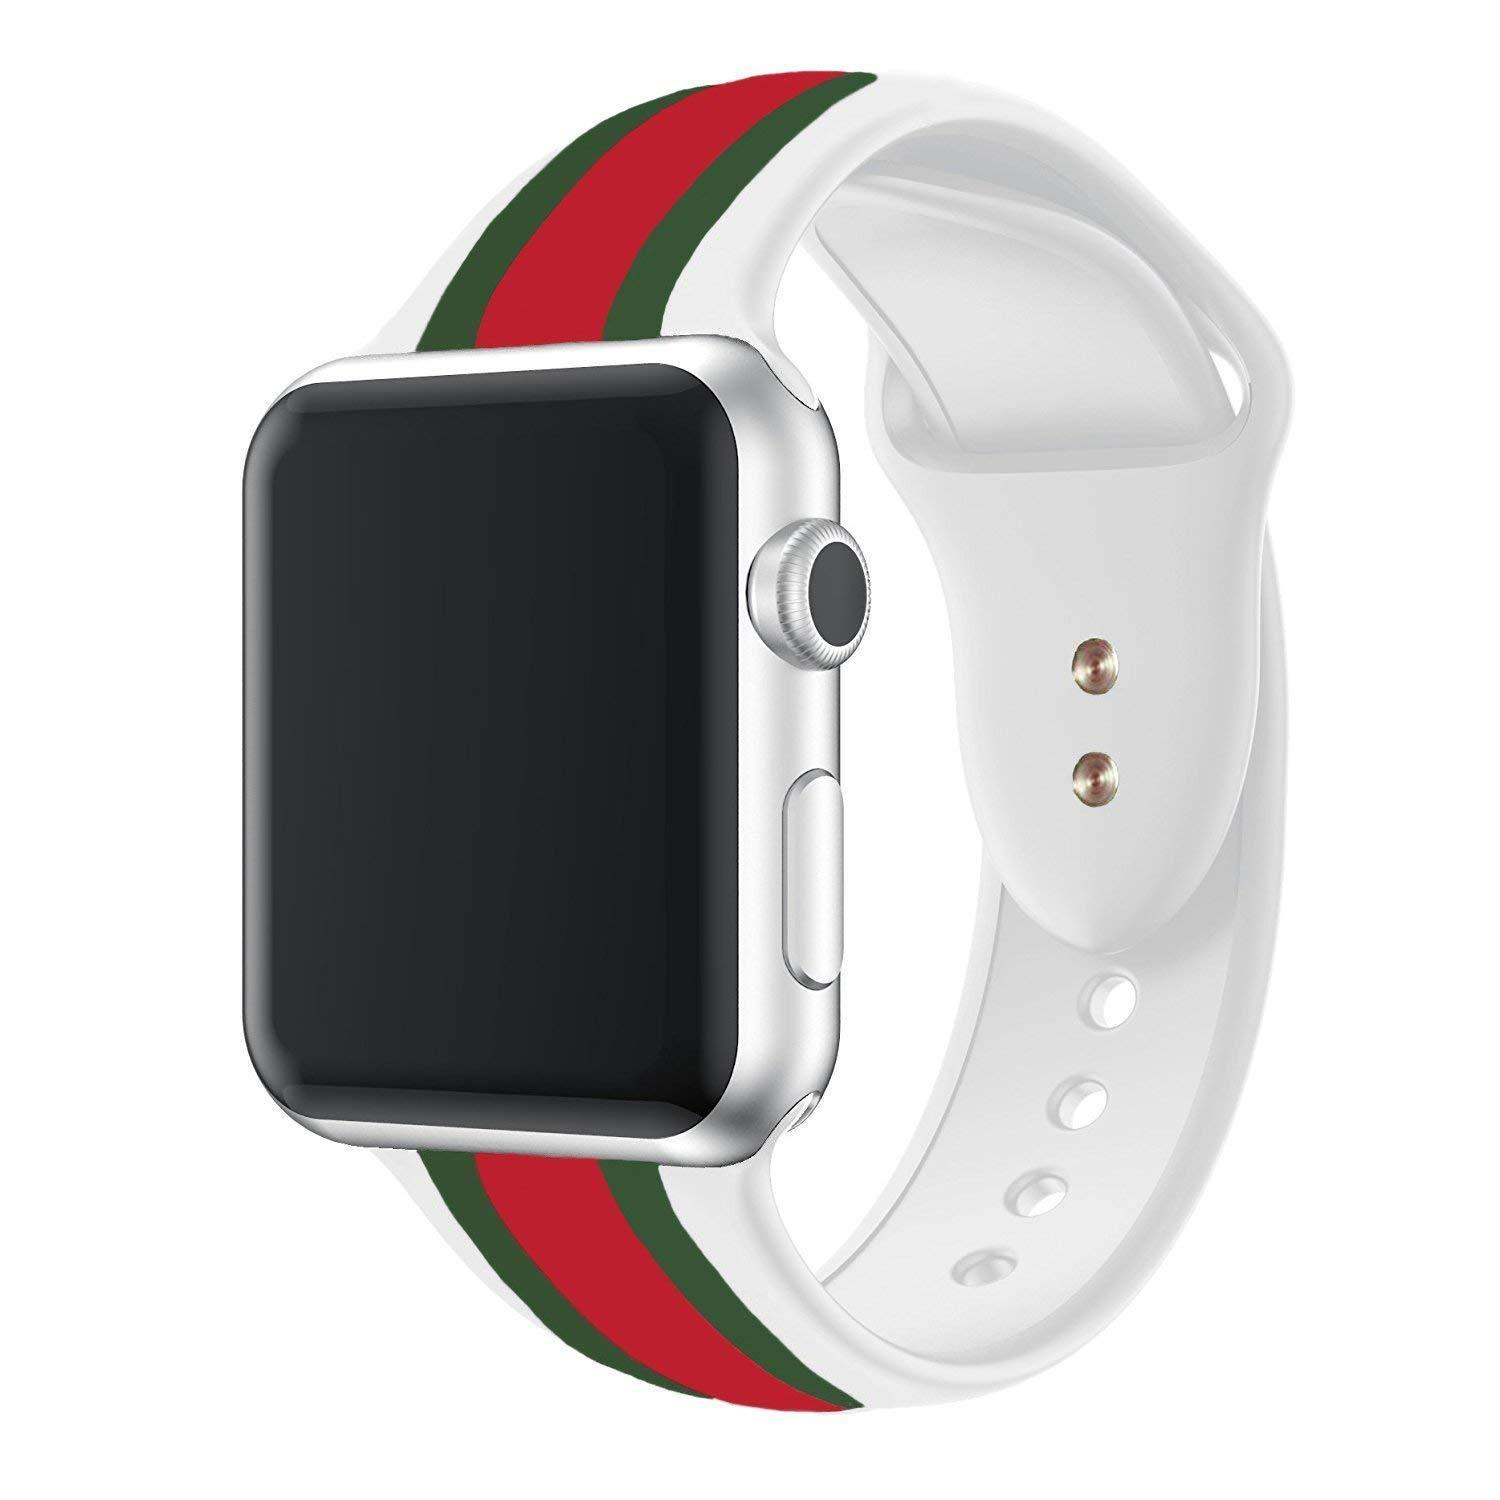 Compatible with Apple Smart Watch Sports Silicone Bands Black White Design Strap Only